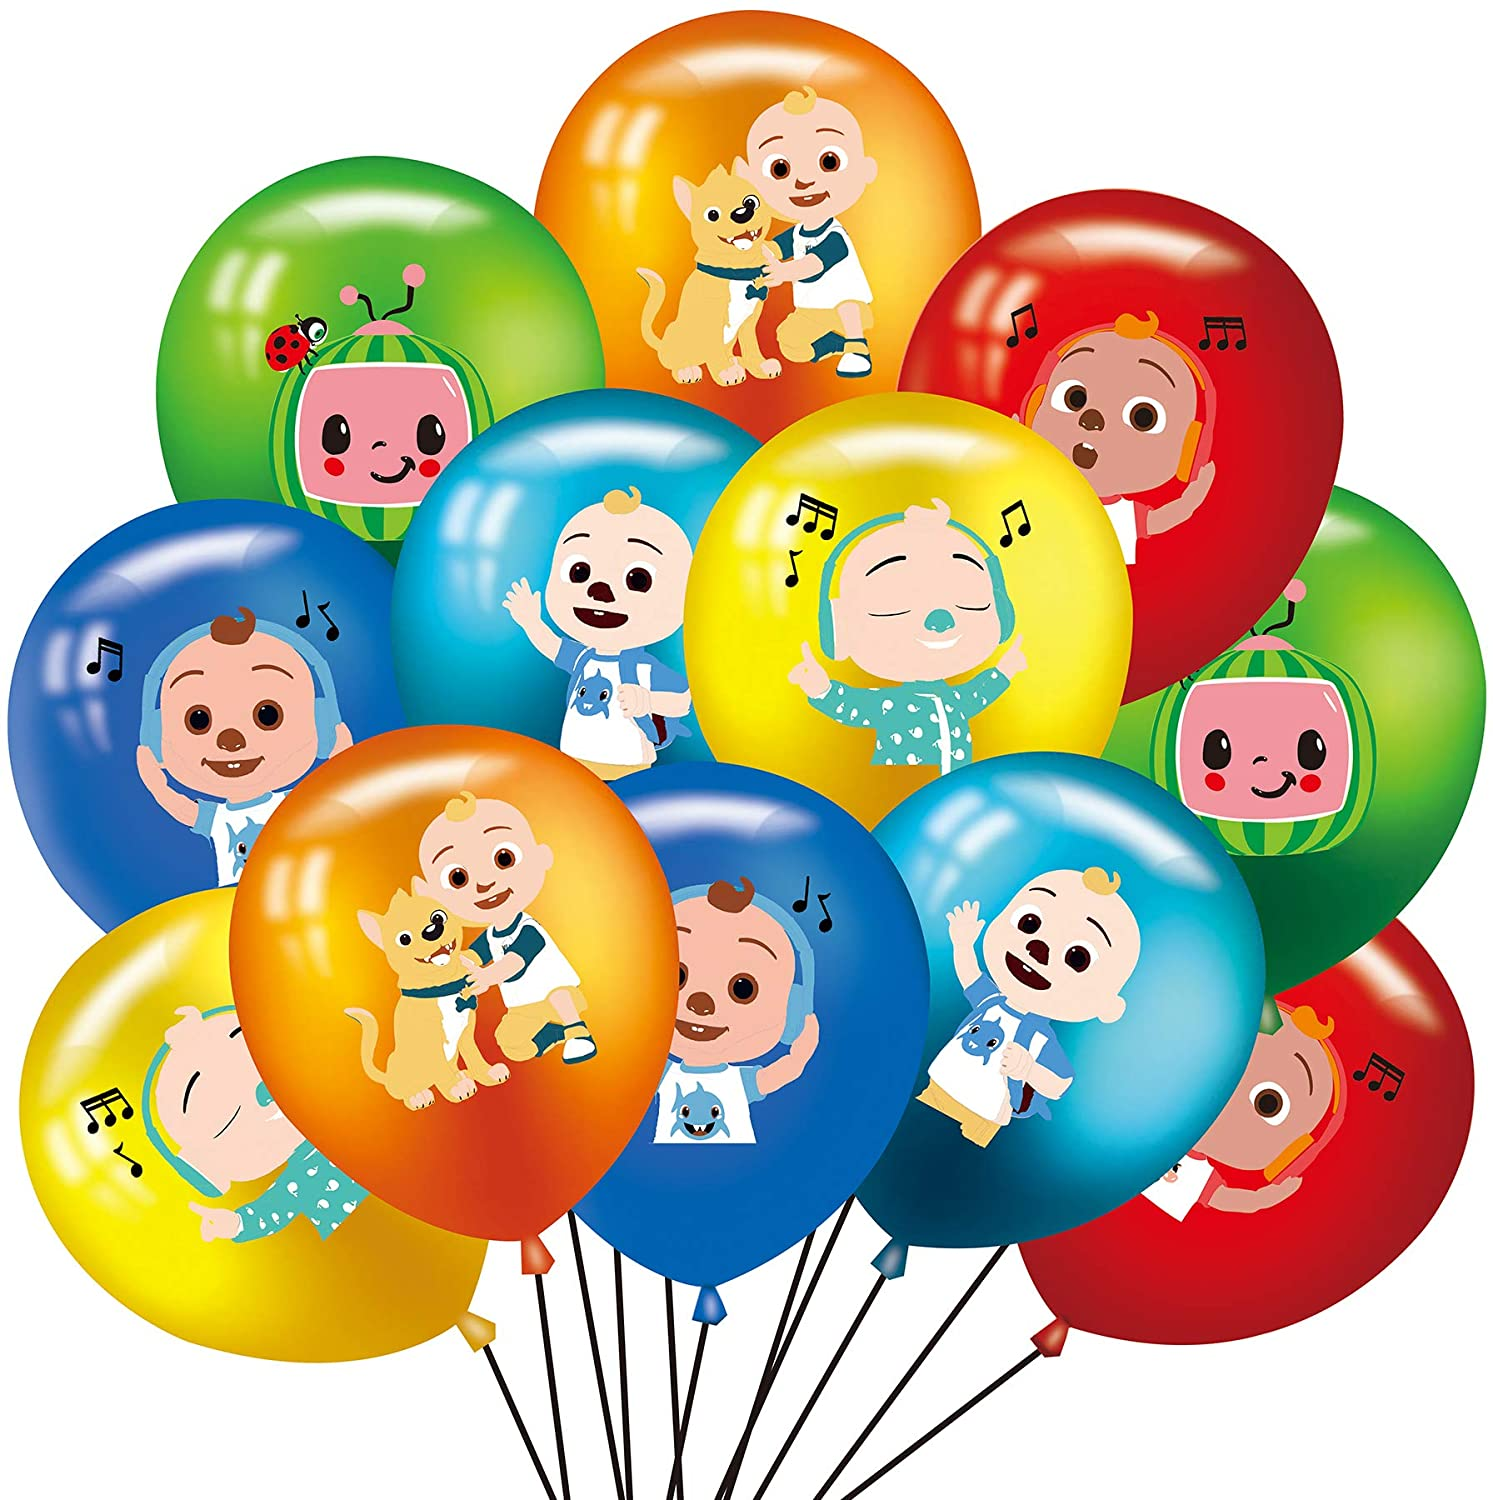 48PCS COCOMELON Balloons, Latex Party Balloons with cocomelon The Theme Birthday Party Supplies and Decorations, 12-inch latex balloons Party Decoration Kids Boys and Baby Shower Birthday Party Favors